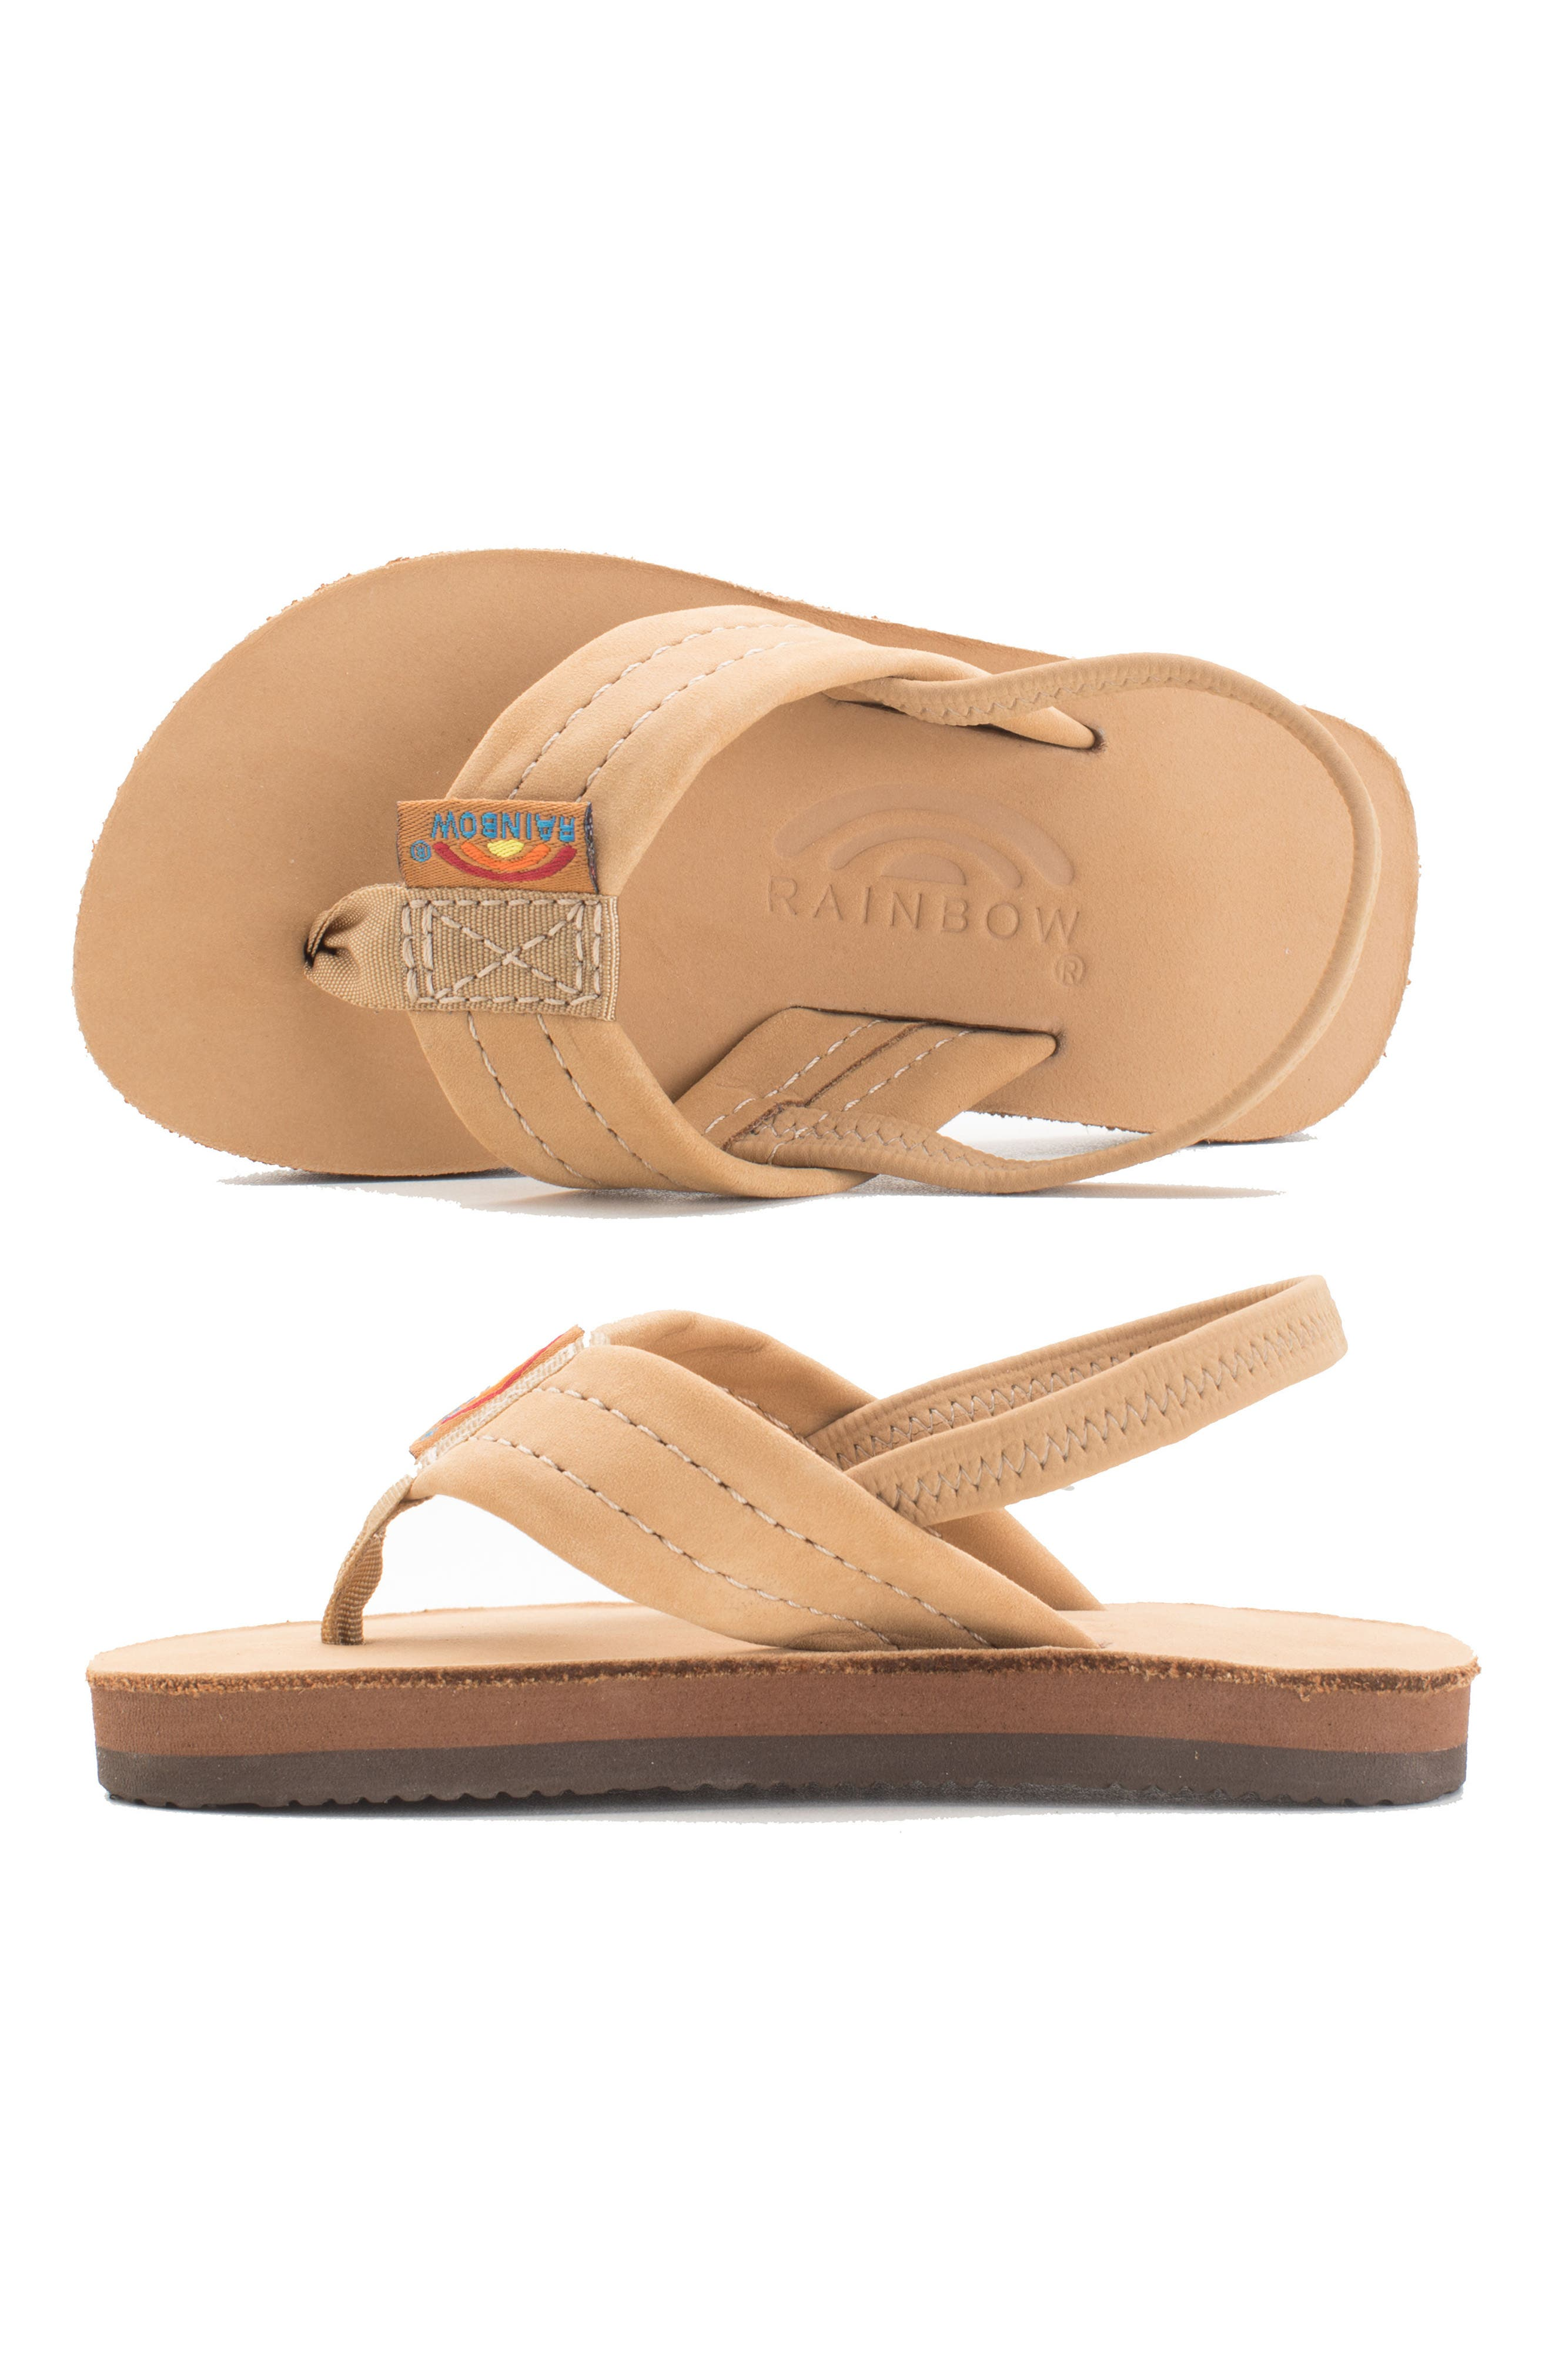 RAINBOW<SUP>®</SUP>, Rainbow Leather Sandal, Alternate thumbnail 12, color, EXPRESSO